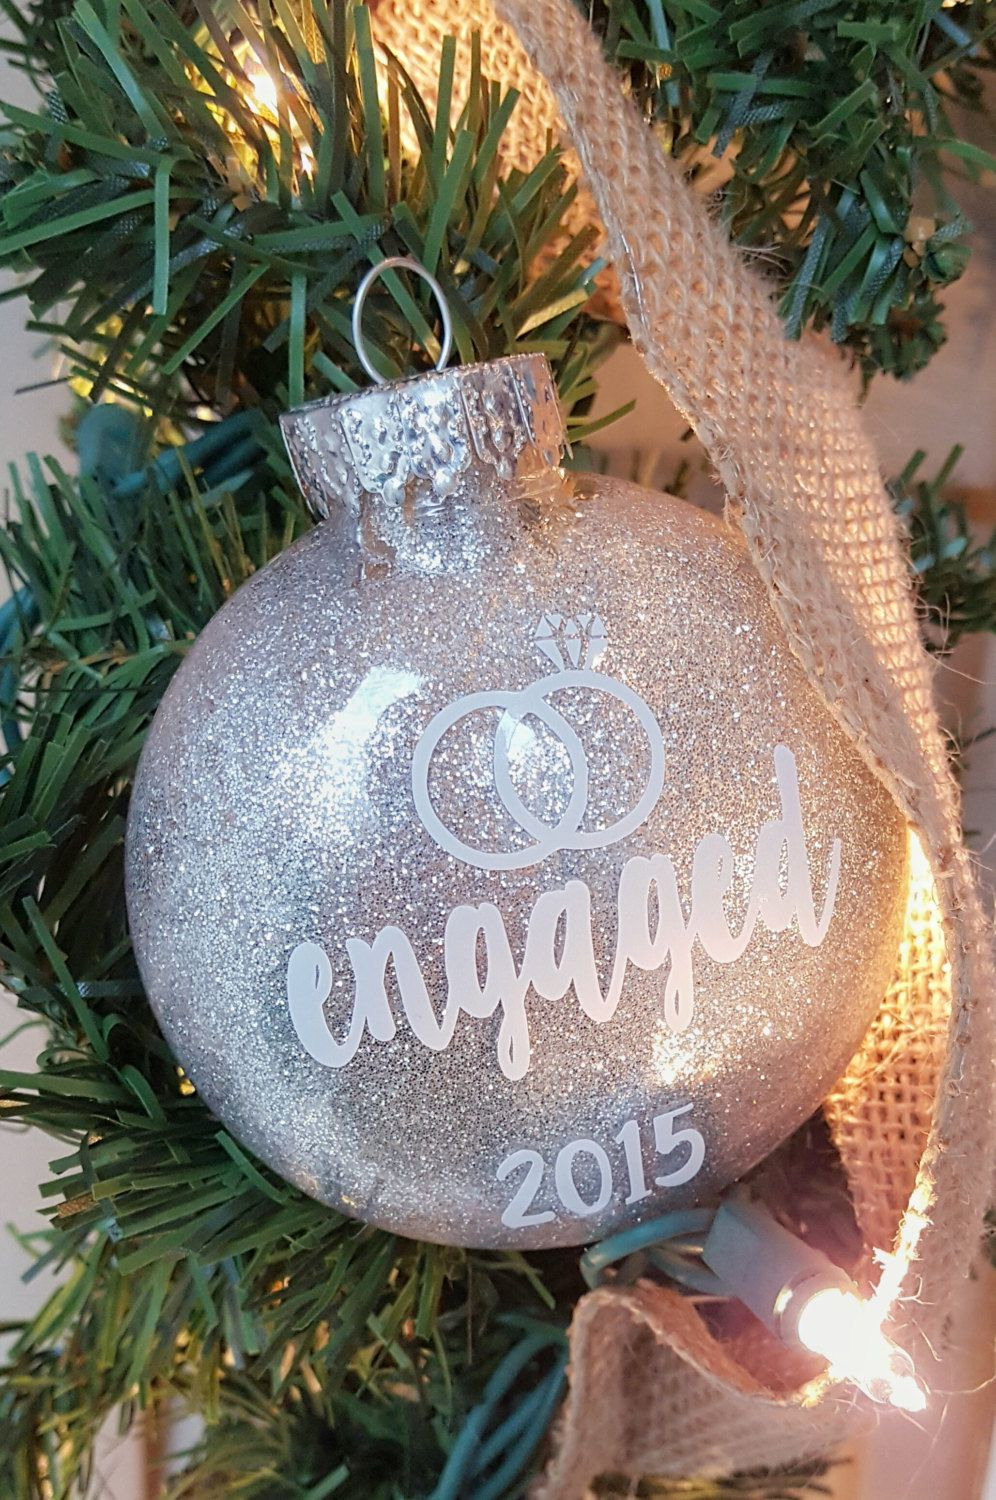 Engaged christmas ornamentglitter ornamentchristmas ornament